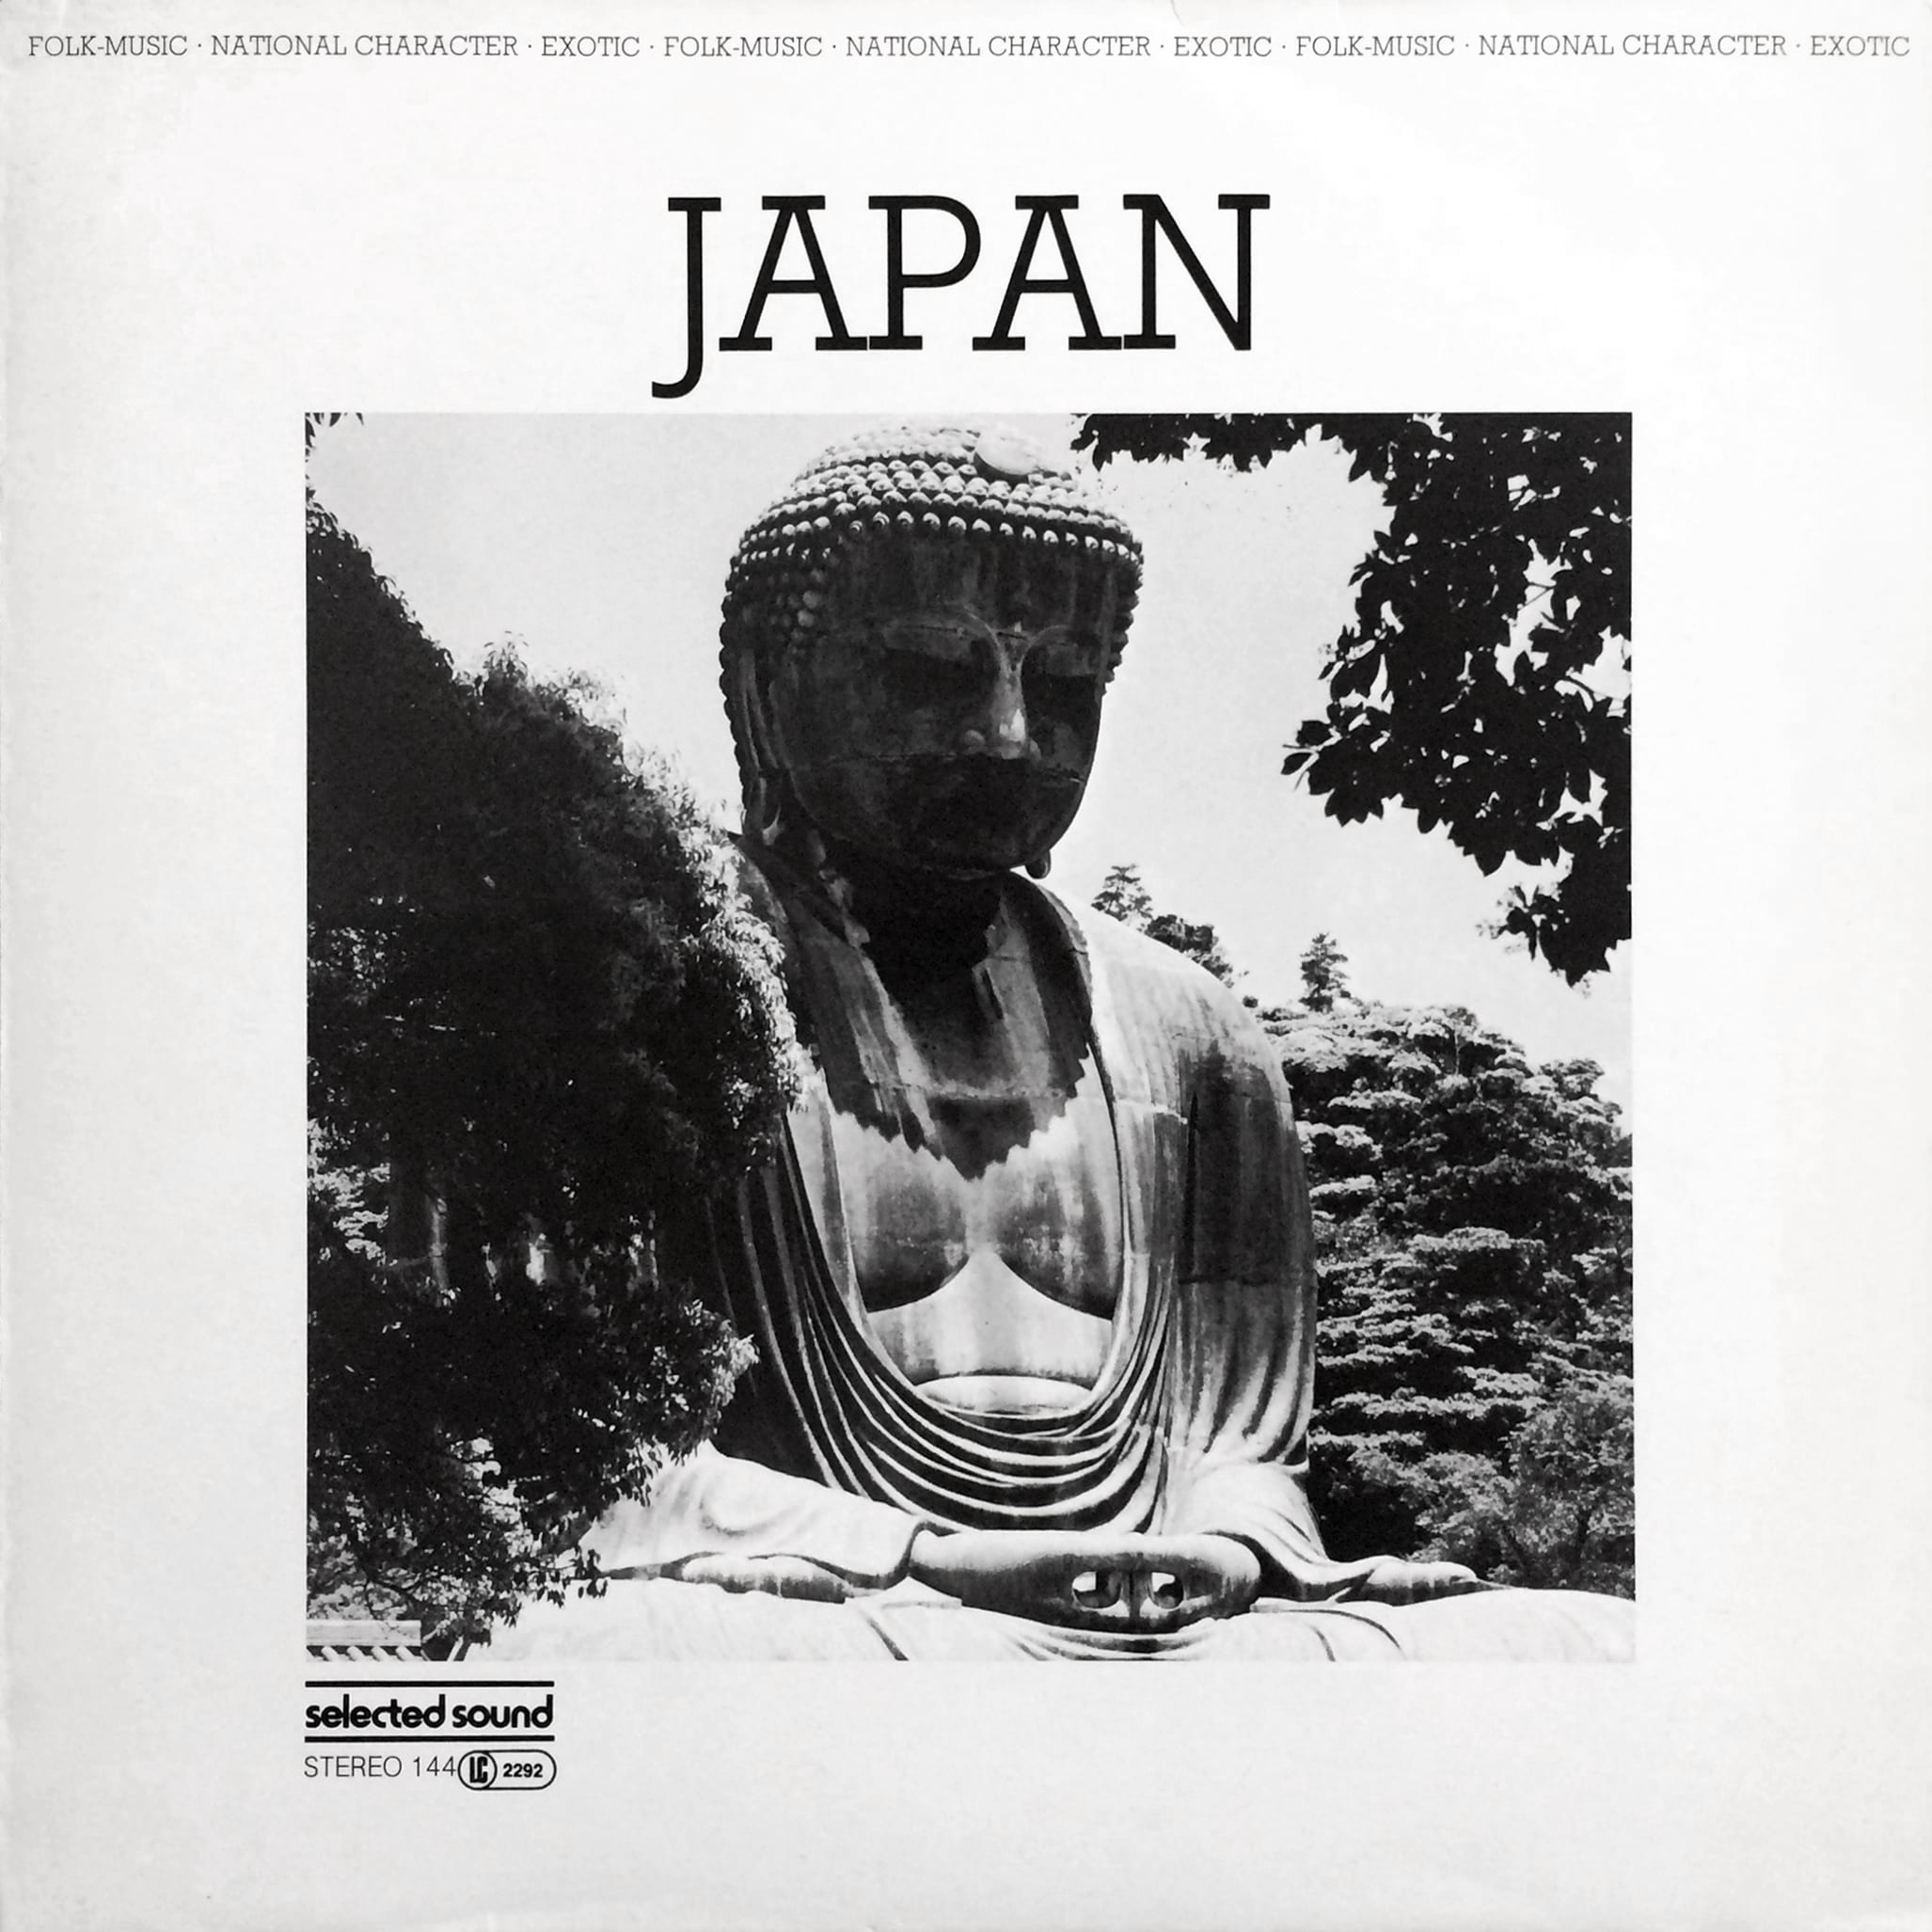 Selected Sound ‎– Folklore-Serie JAPAN – Selected Sound ‎– ST 144 Germany 1983 Victor Cavini (pseudonym used by Gerhard Trede for Library Music compositions).